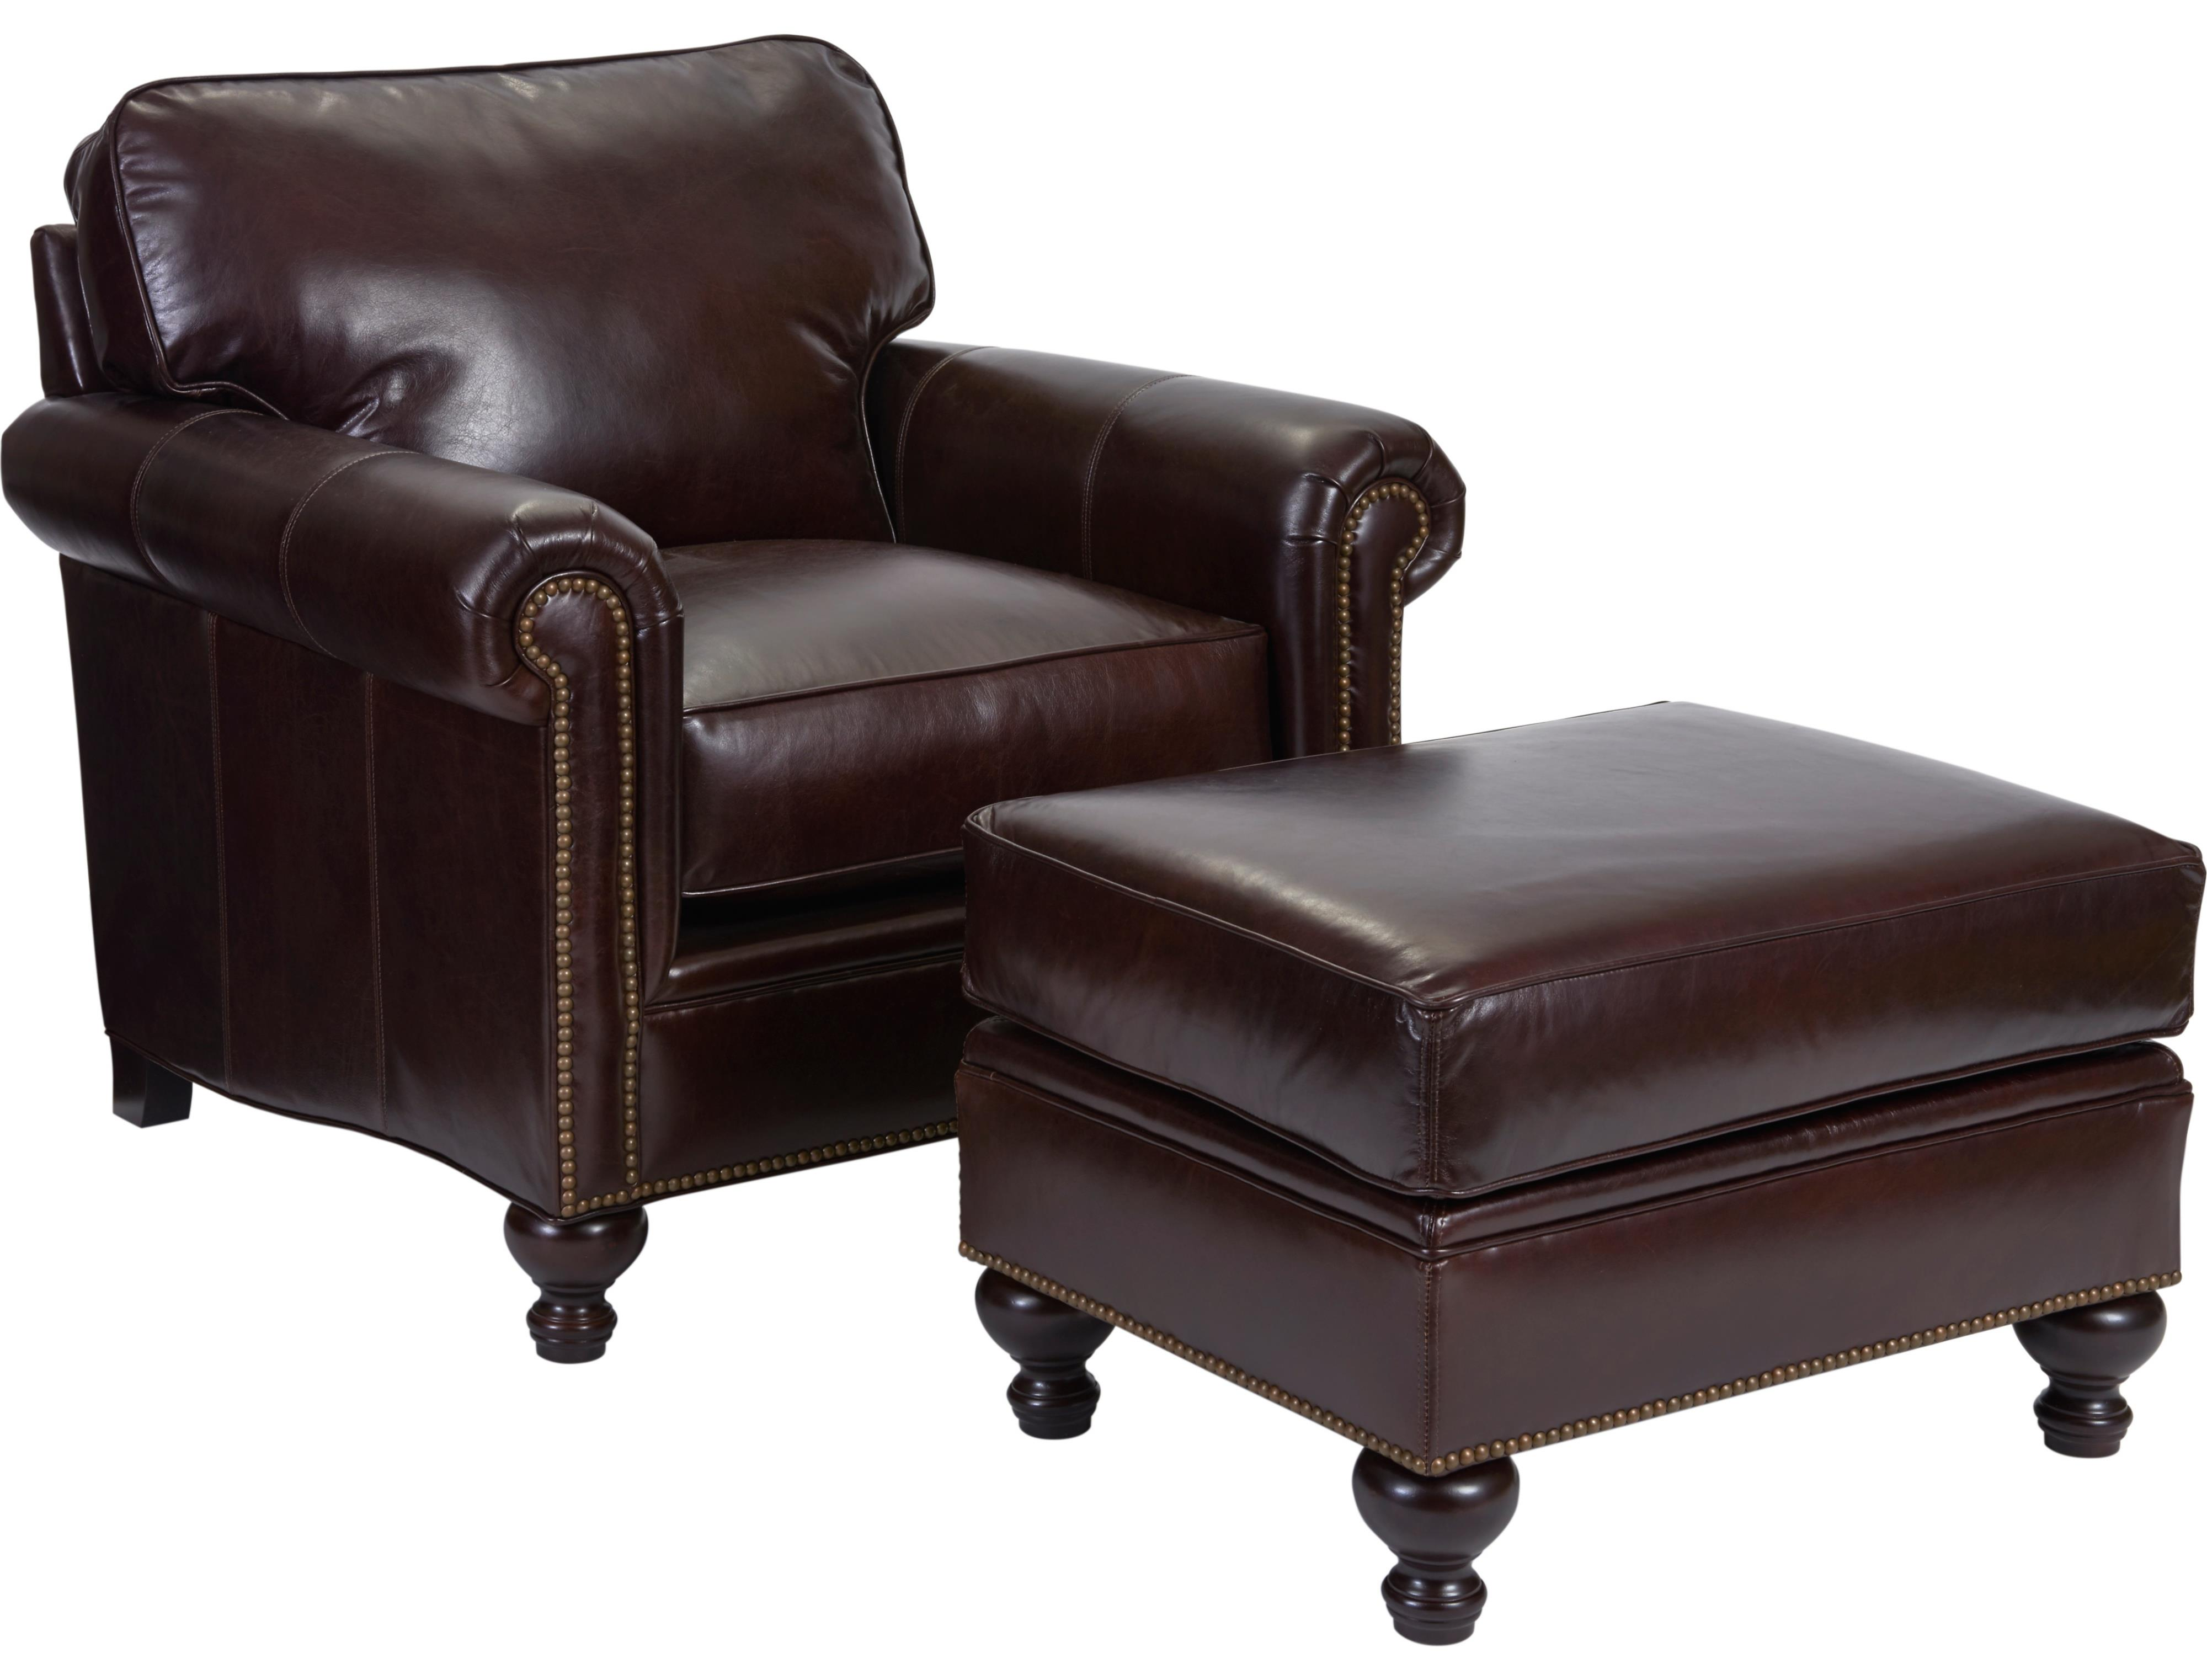 Broyhill Furniture Harrison Chair and Ottoman - Item Number: L6751-0+5-0015-89